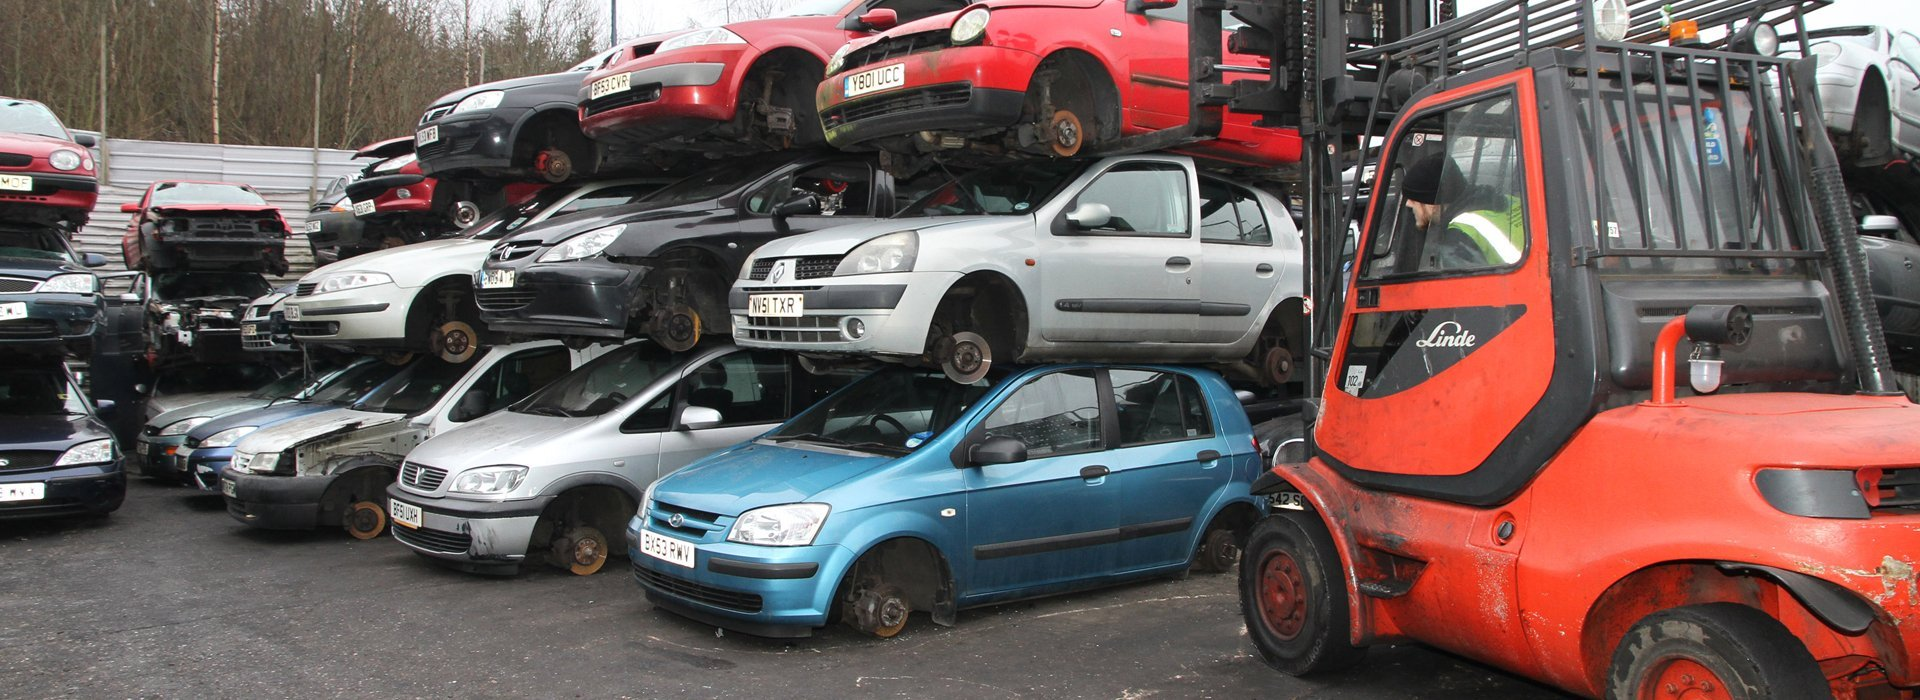 Vehicle Recycling & Scrap Car Collection In Birmingham